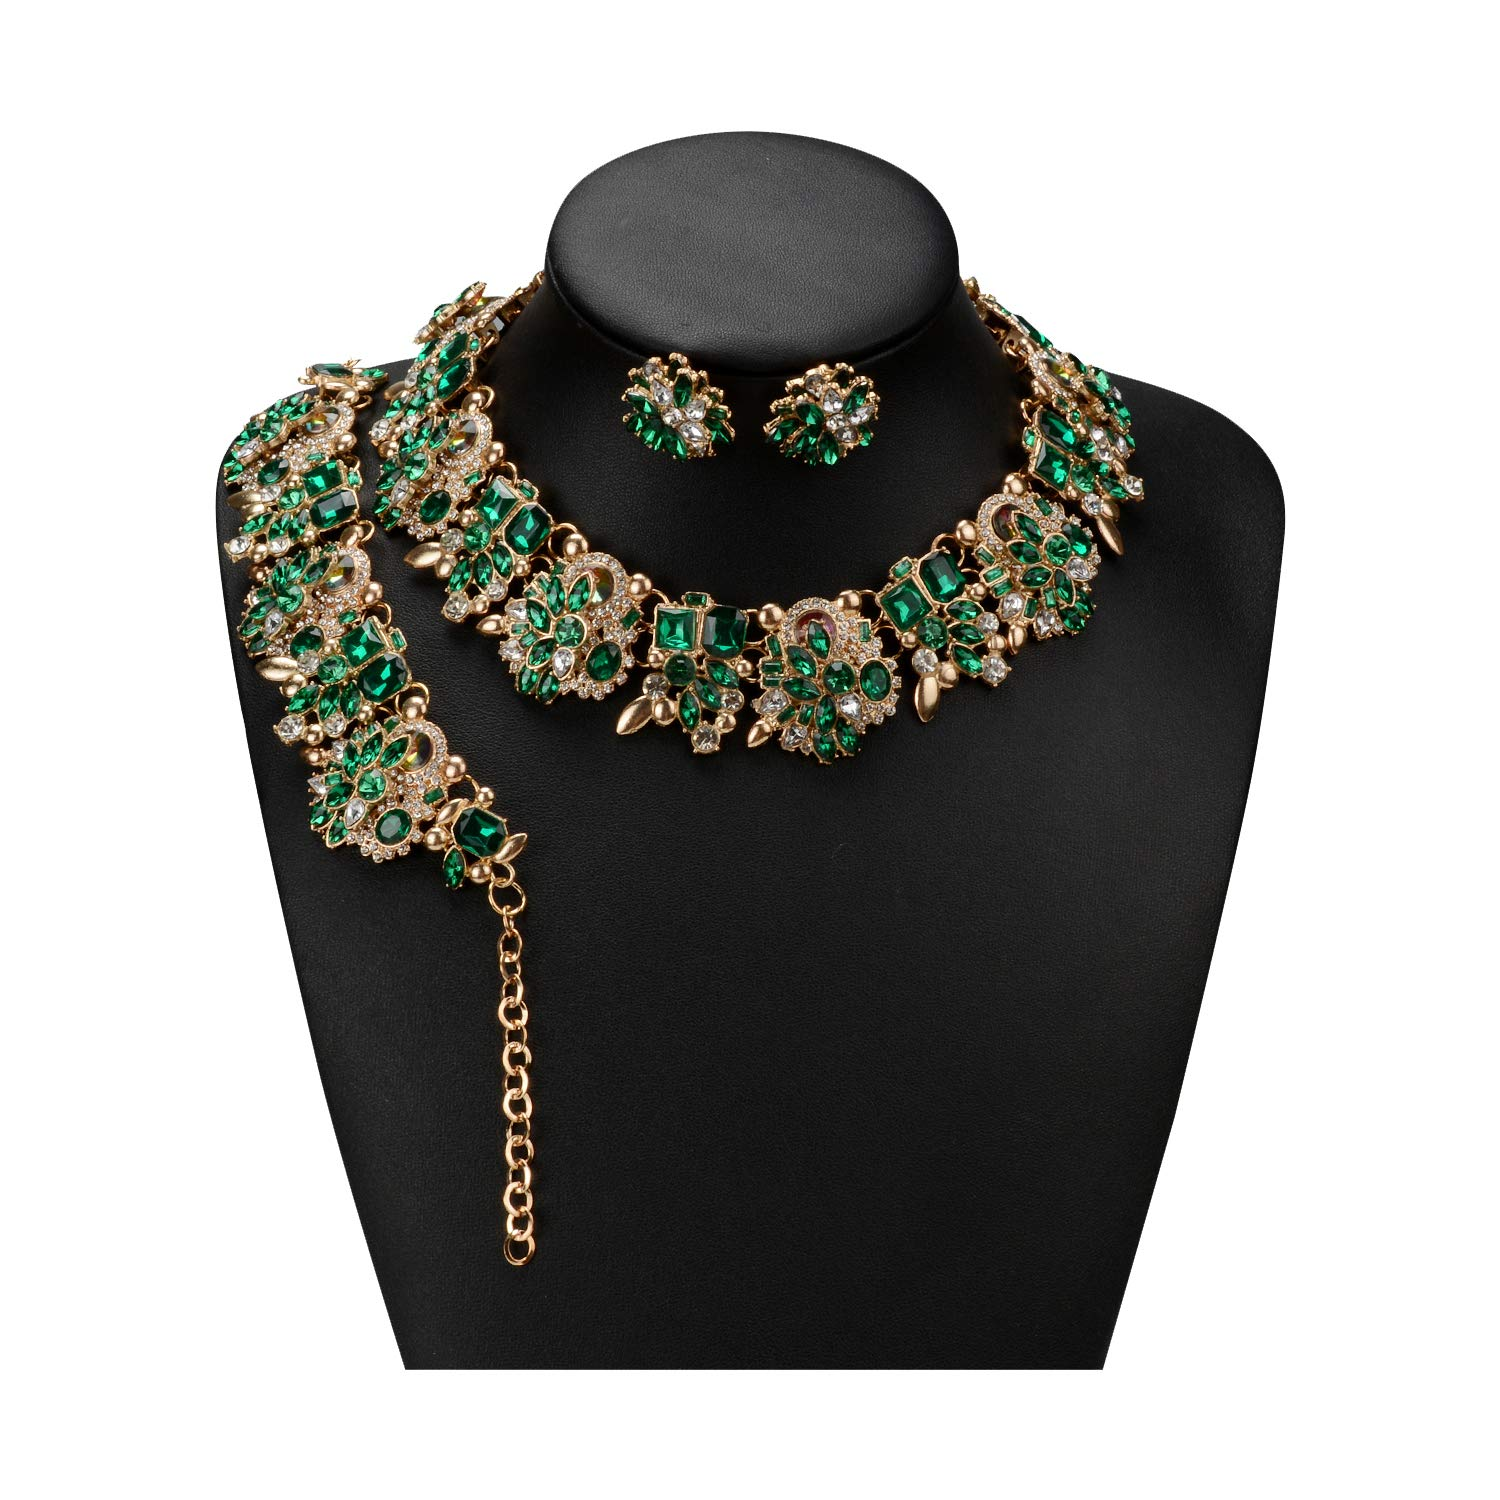 Holylove Green Retro Style Statement Necklace Bracelet Earrings for Women Novelty Jewelry Set 1 with Gift Box-8041BGreen Set